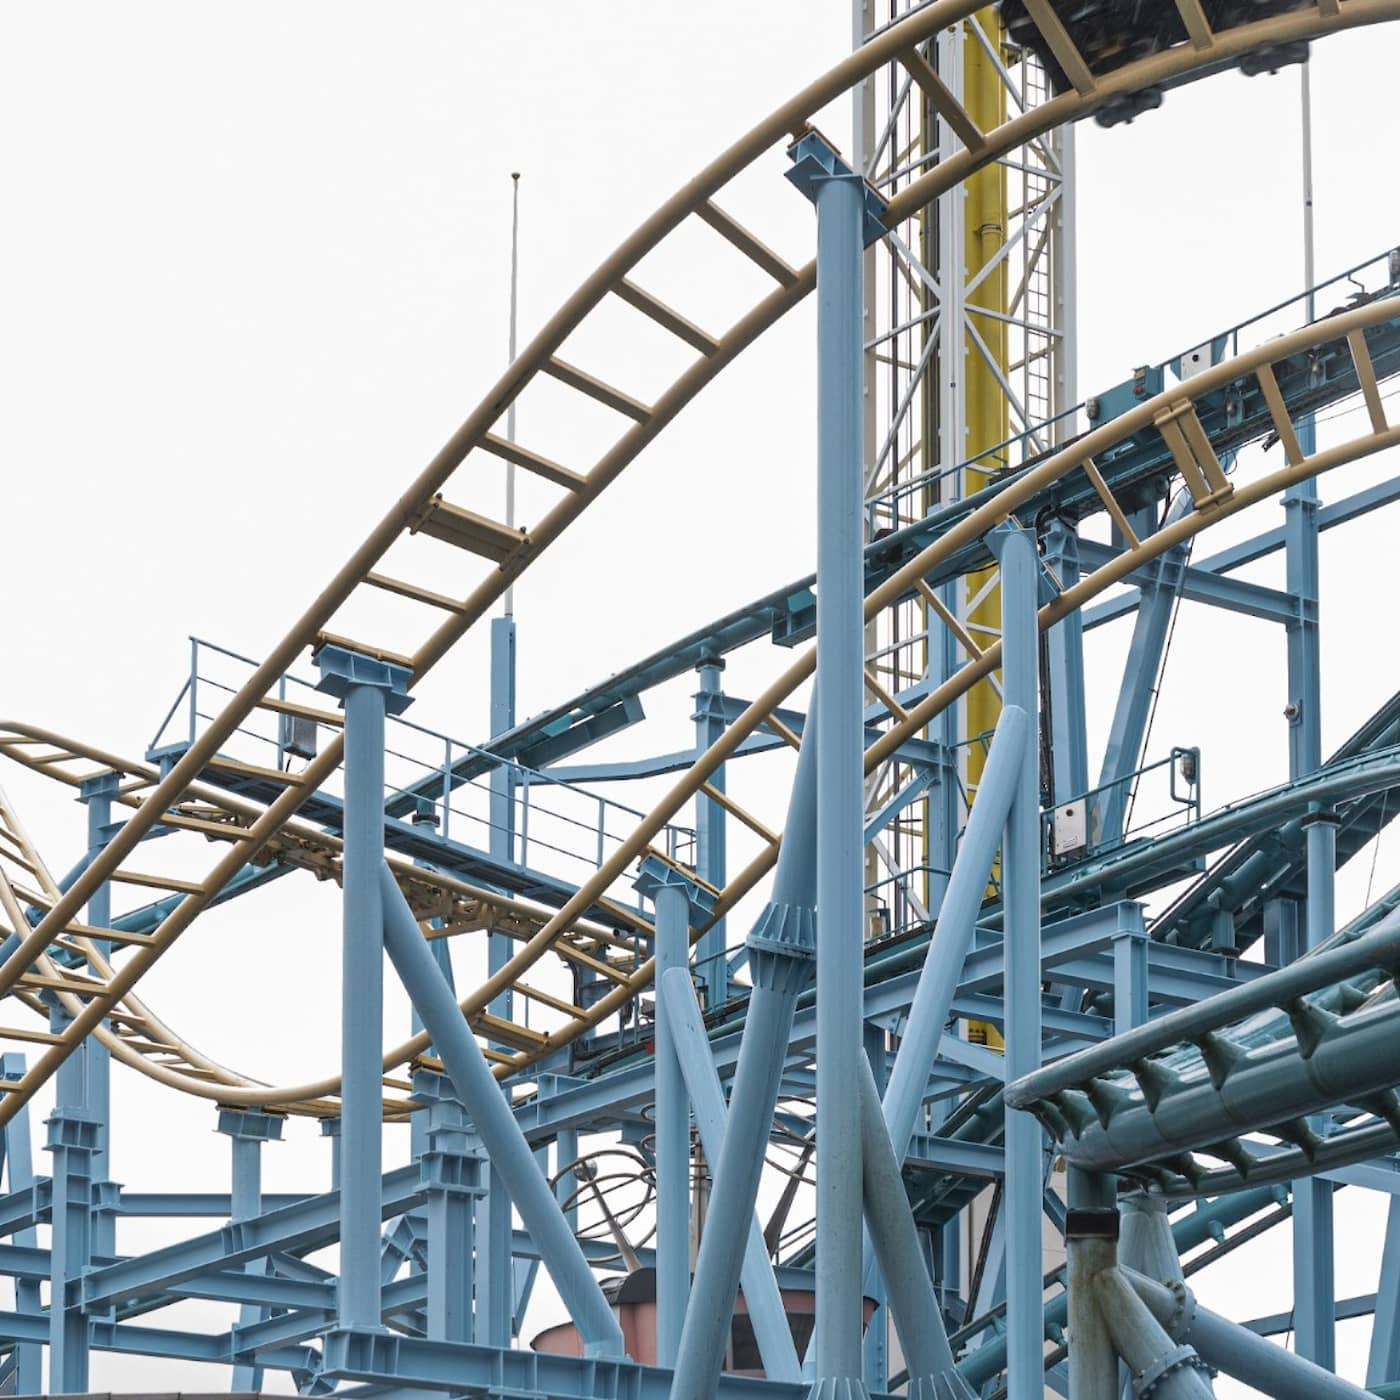 Radio Sweden Weekly: How Gröna Lund is recovering, Covid update and students forced to leave Gotland